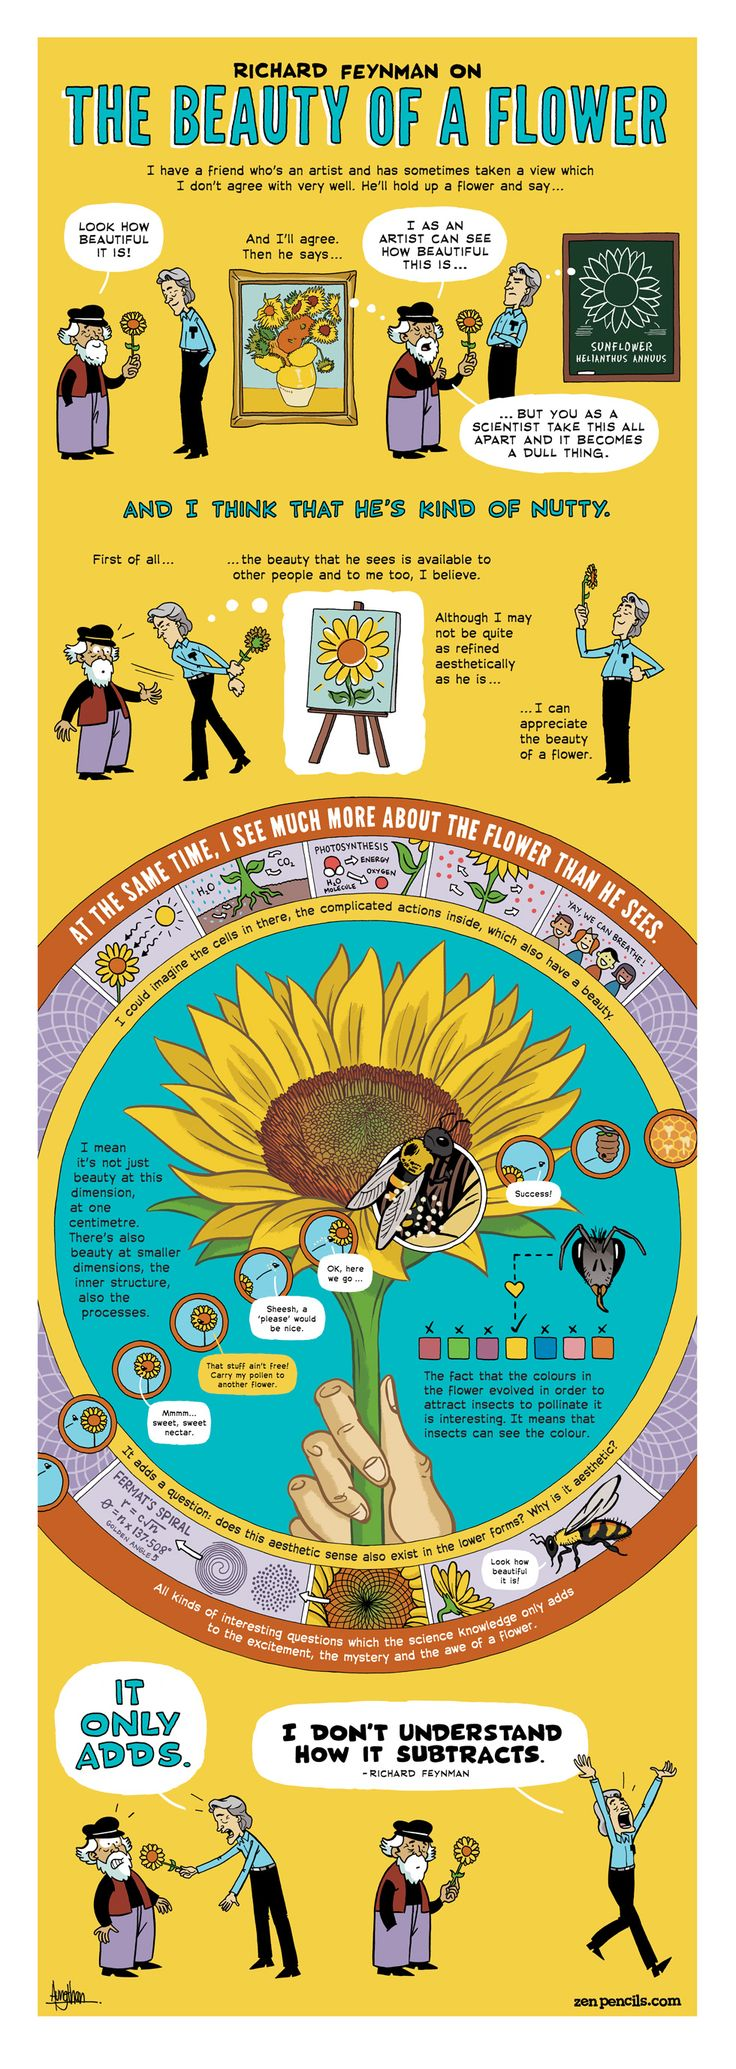 """Australian cartoonist Gavin Aung Than illustrates interesting quotes uttered by interesting people. I love this intricate, stunning visual storytelling. Here is """"Richard Feynman on the beauty of a flower,"""" from """"Zen Pencils""""."""